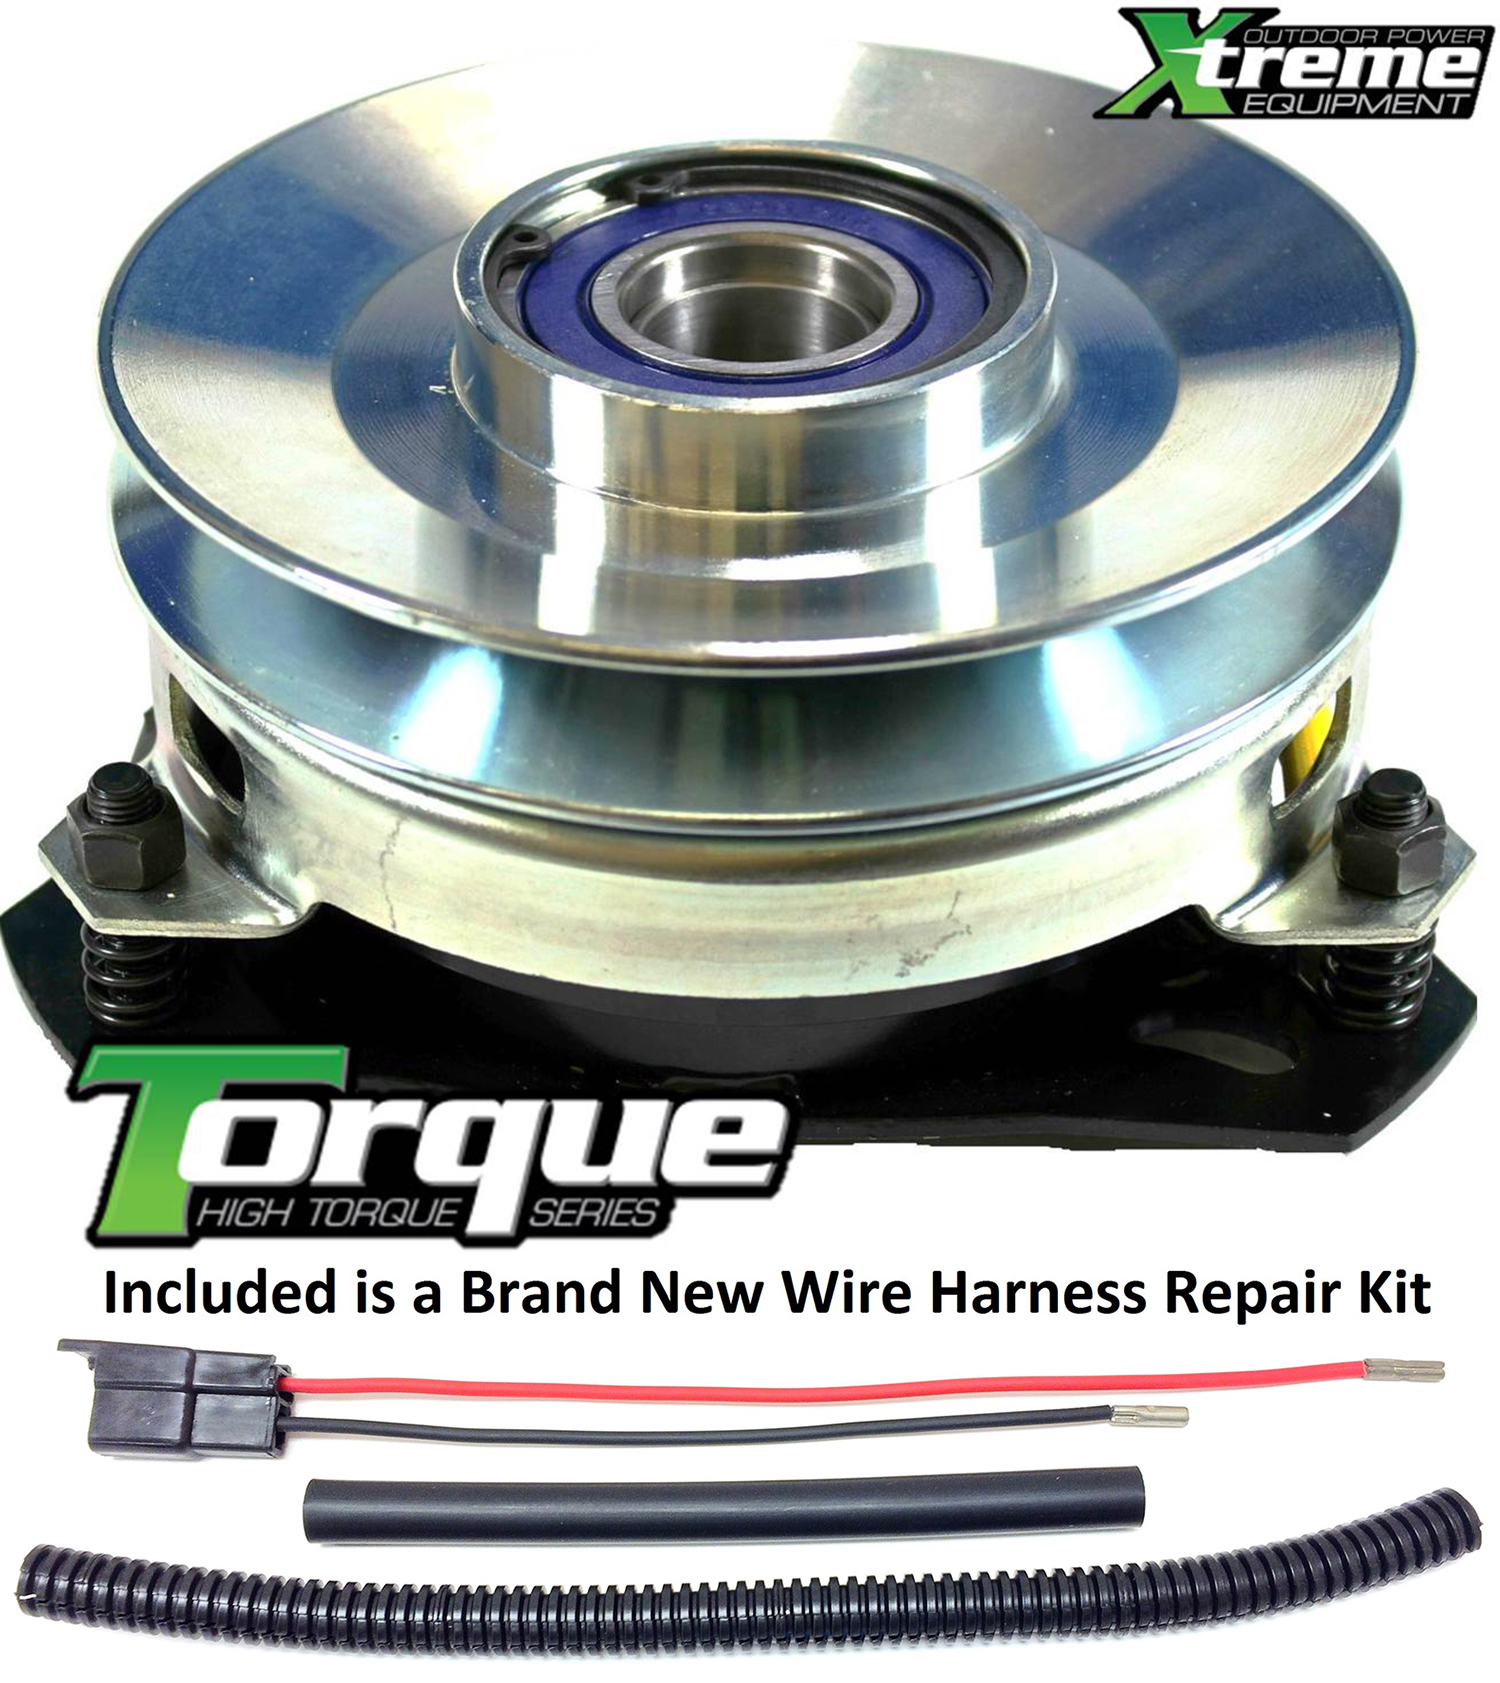 hight resolution of bundle 2 items pto electric blade clutch wire harness repair kit replaces husqvarna 127170x pto clutch torque upgrade w wire harness repair kit